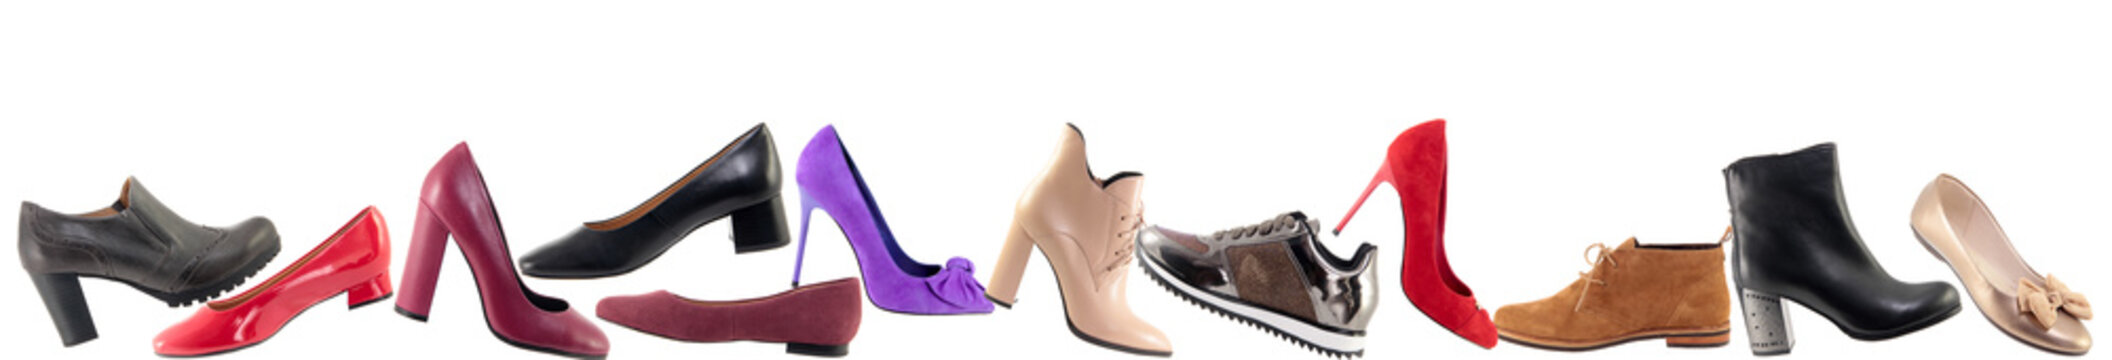 Shoes advertising banner, Collage of different shoes